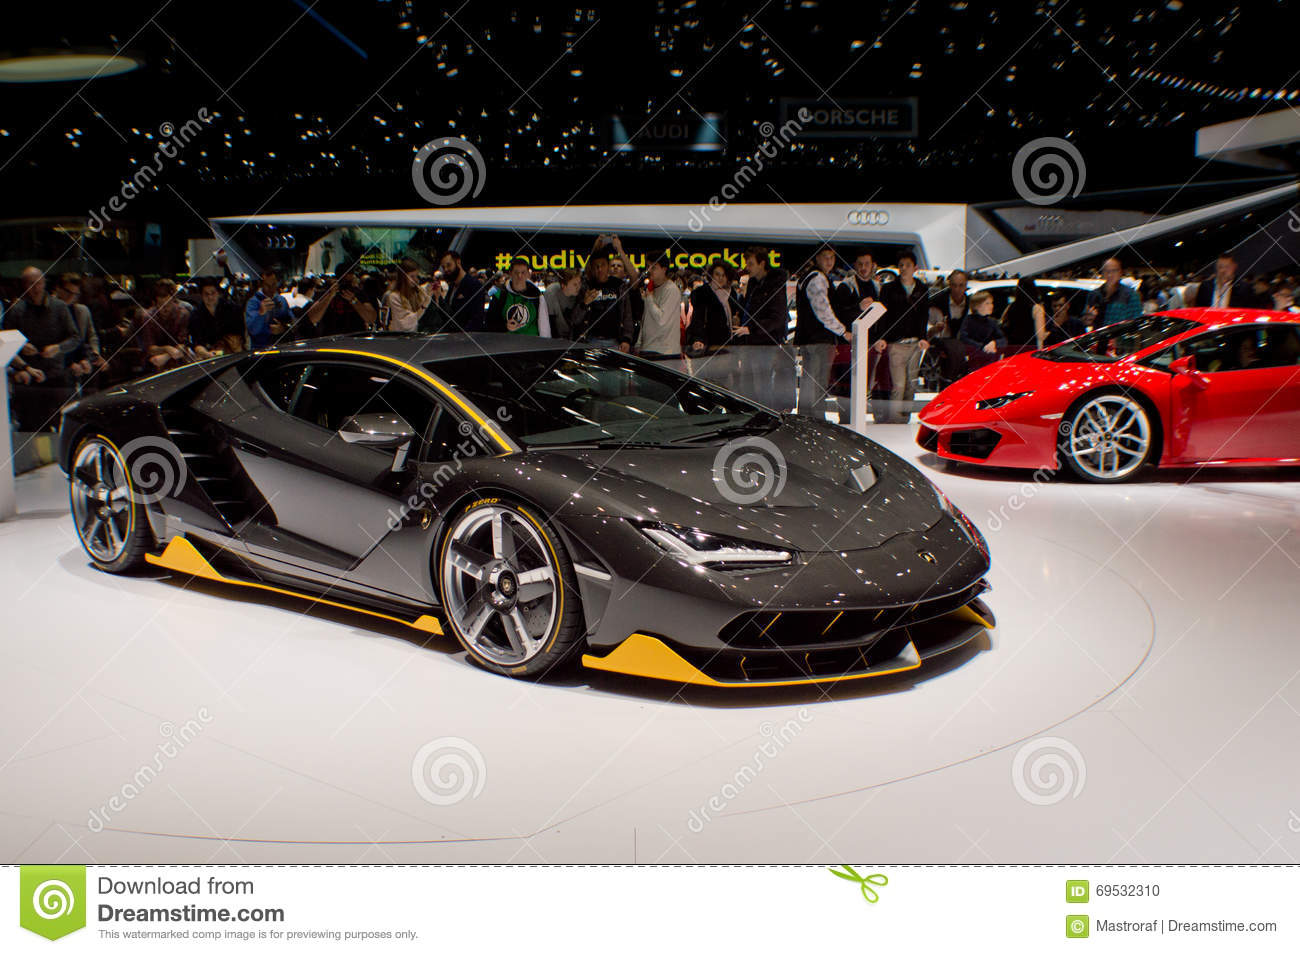 lamborghini centenario lp770-4 at geneva 2016 editorial image